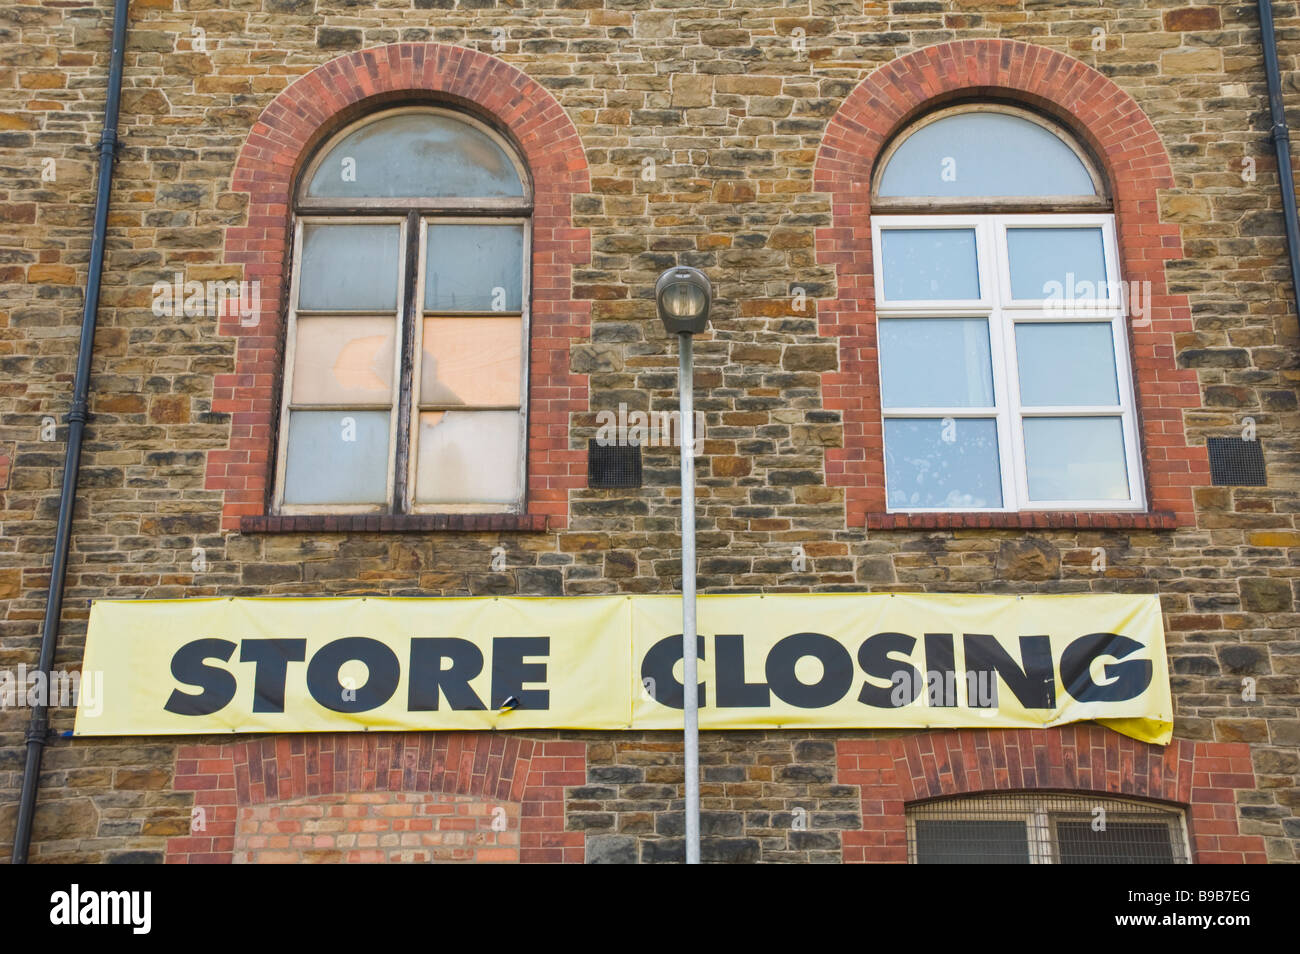 STORE CLOSING banner on wall under windows Newport South Wales UK - Stock Image